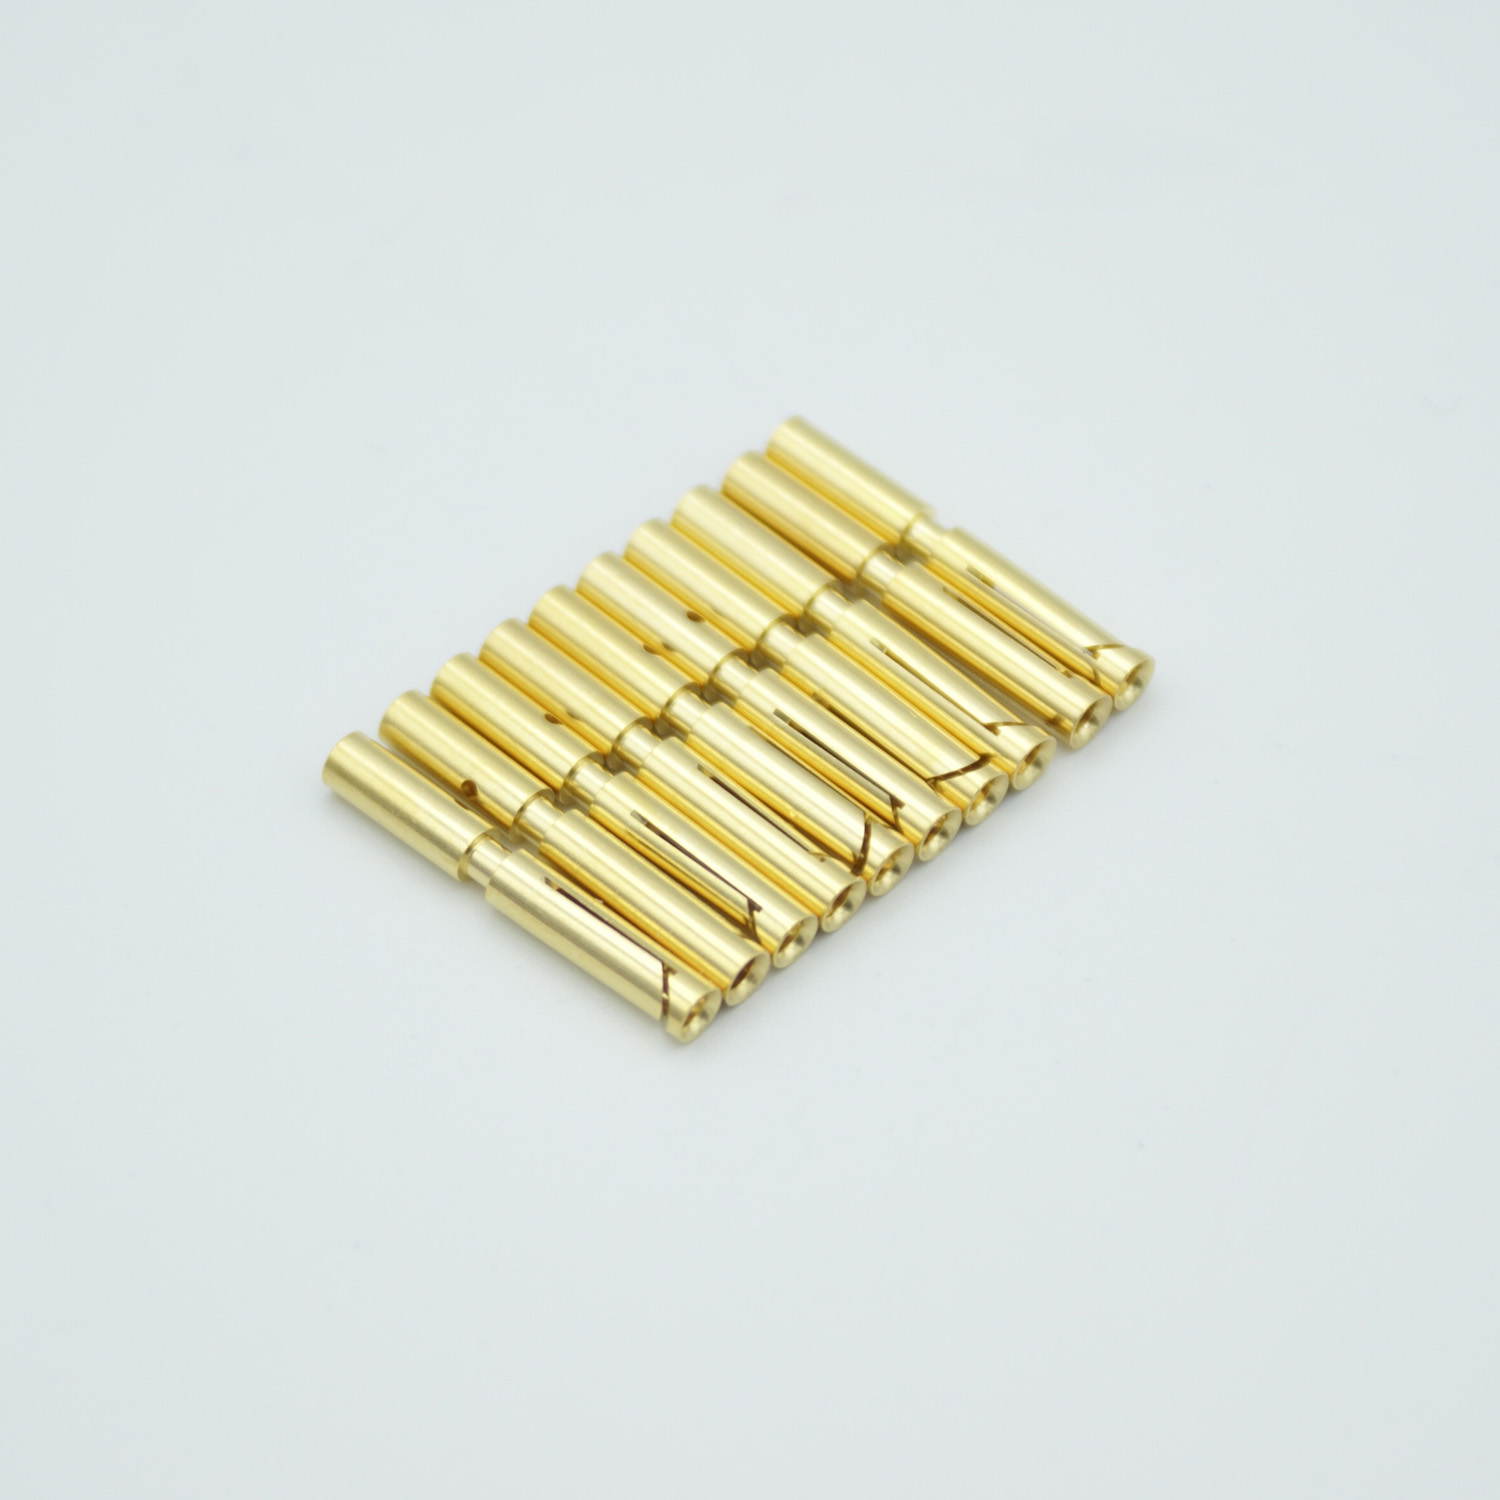 Power crimp type connectors for pin size 0,056